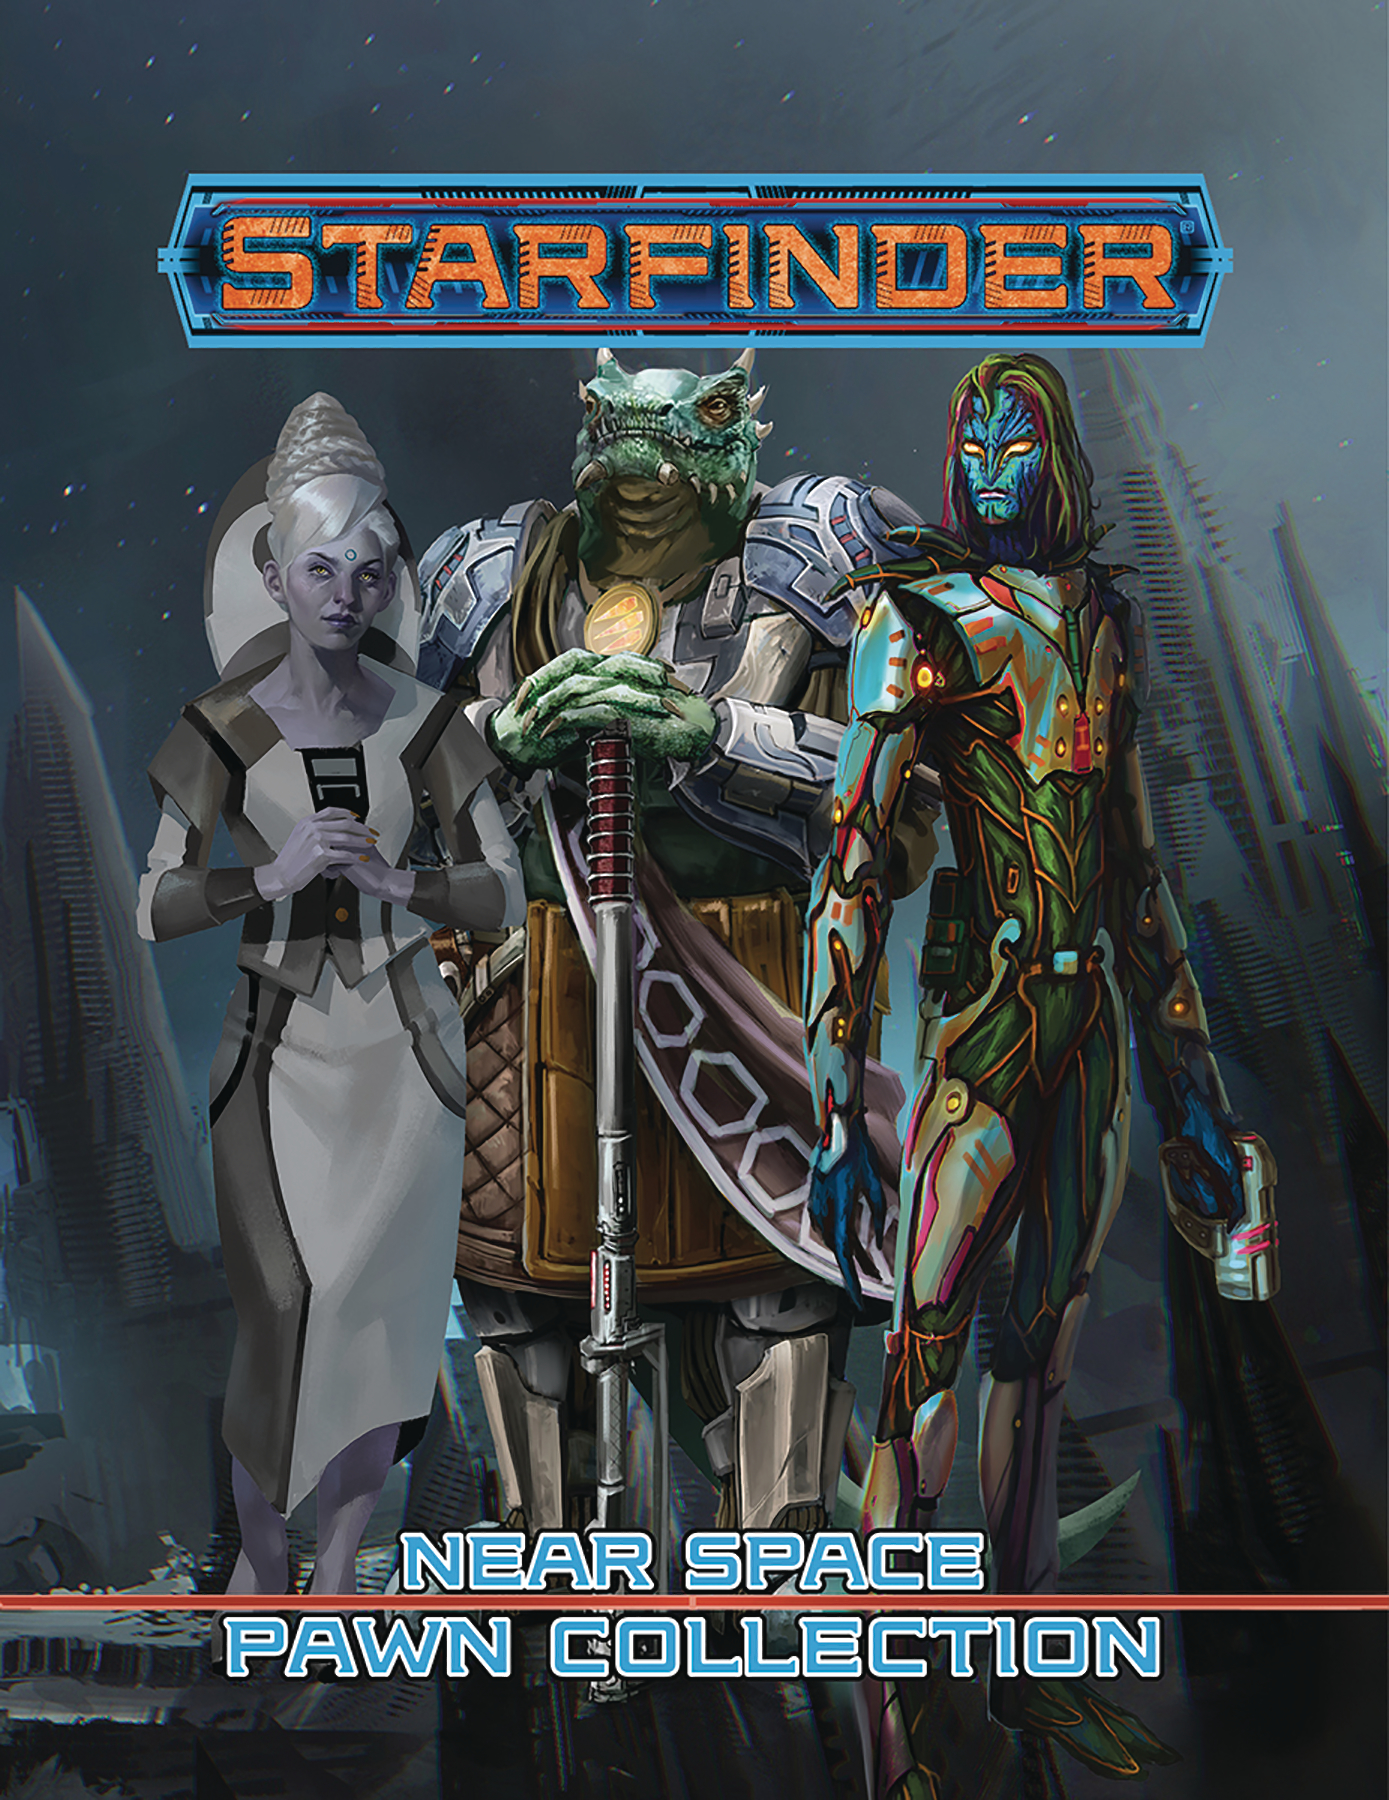 STARFINDER RPG NEAR SPACE PAWN COLL